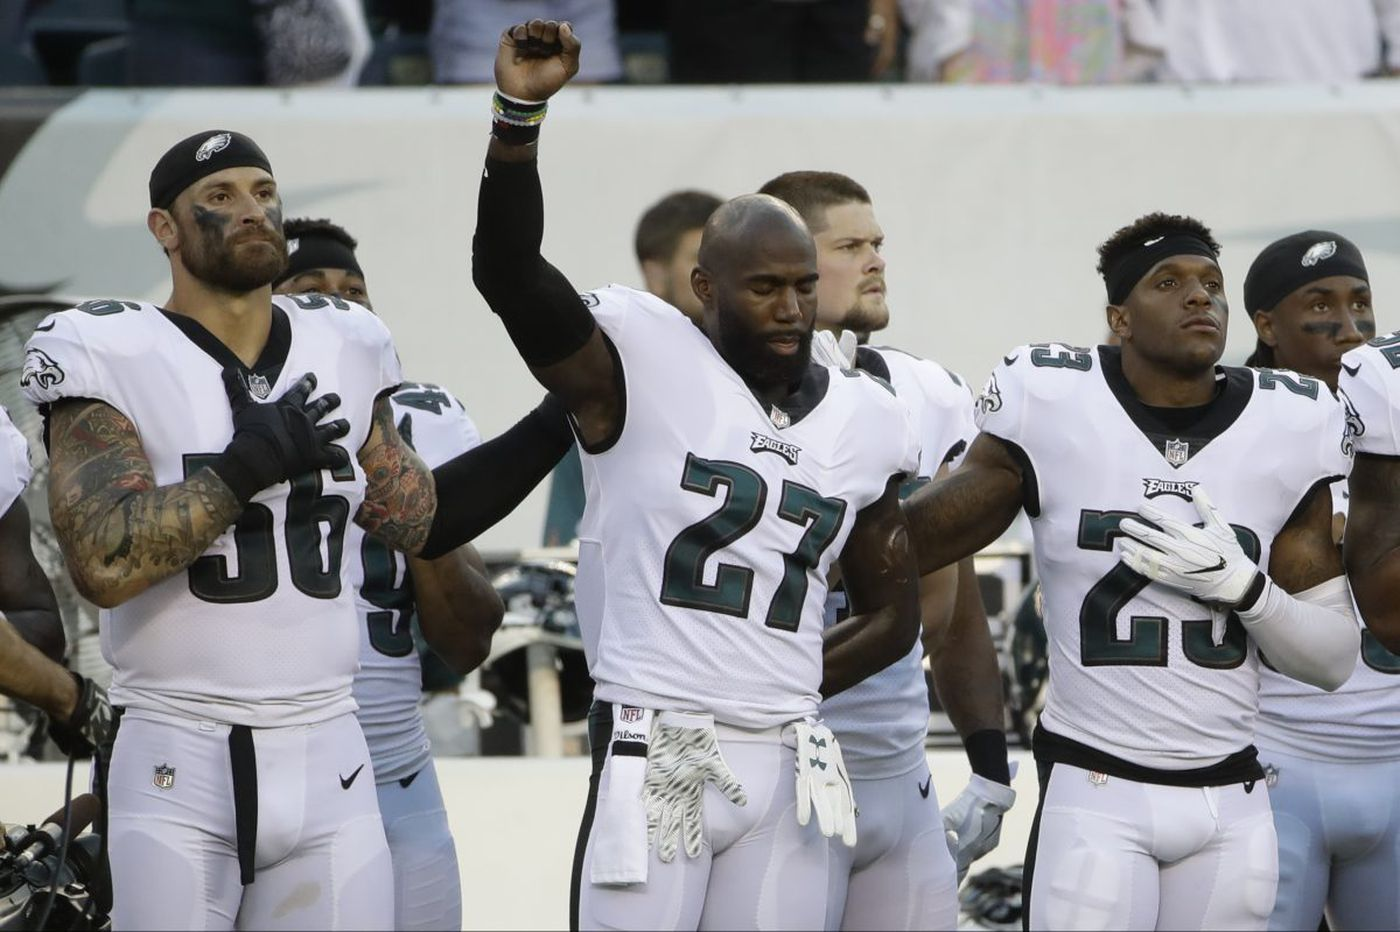 Yo, NFL, you're morally bankrupt - I wish I knew how to quit you   Will Bunch